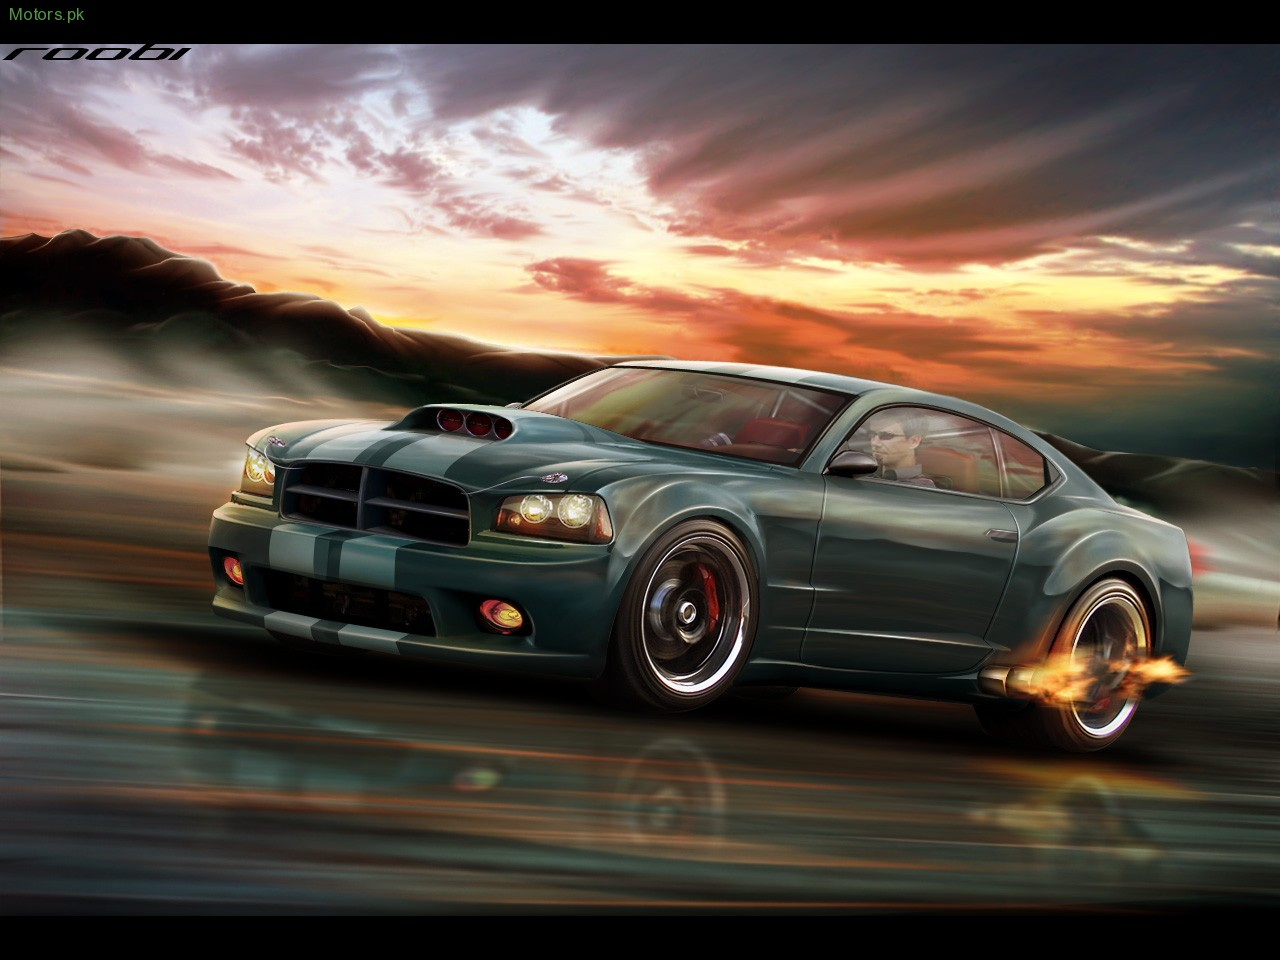 Dodge Charger Desktop Wallpaper Motorspk 1280x960